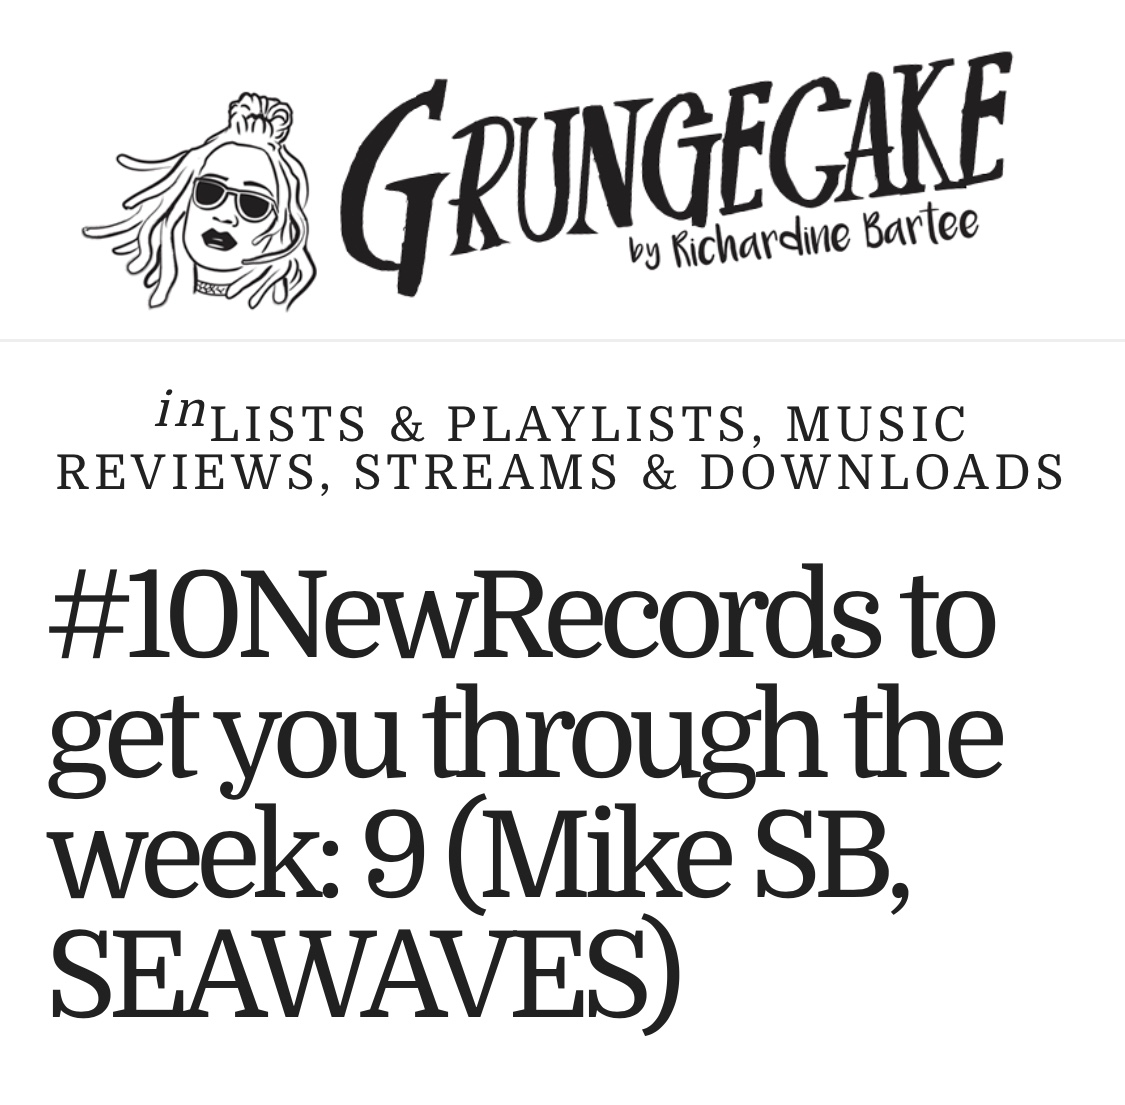 grungecake-mike-sb-seawaves